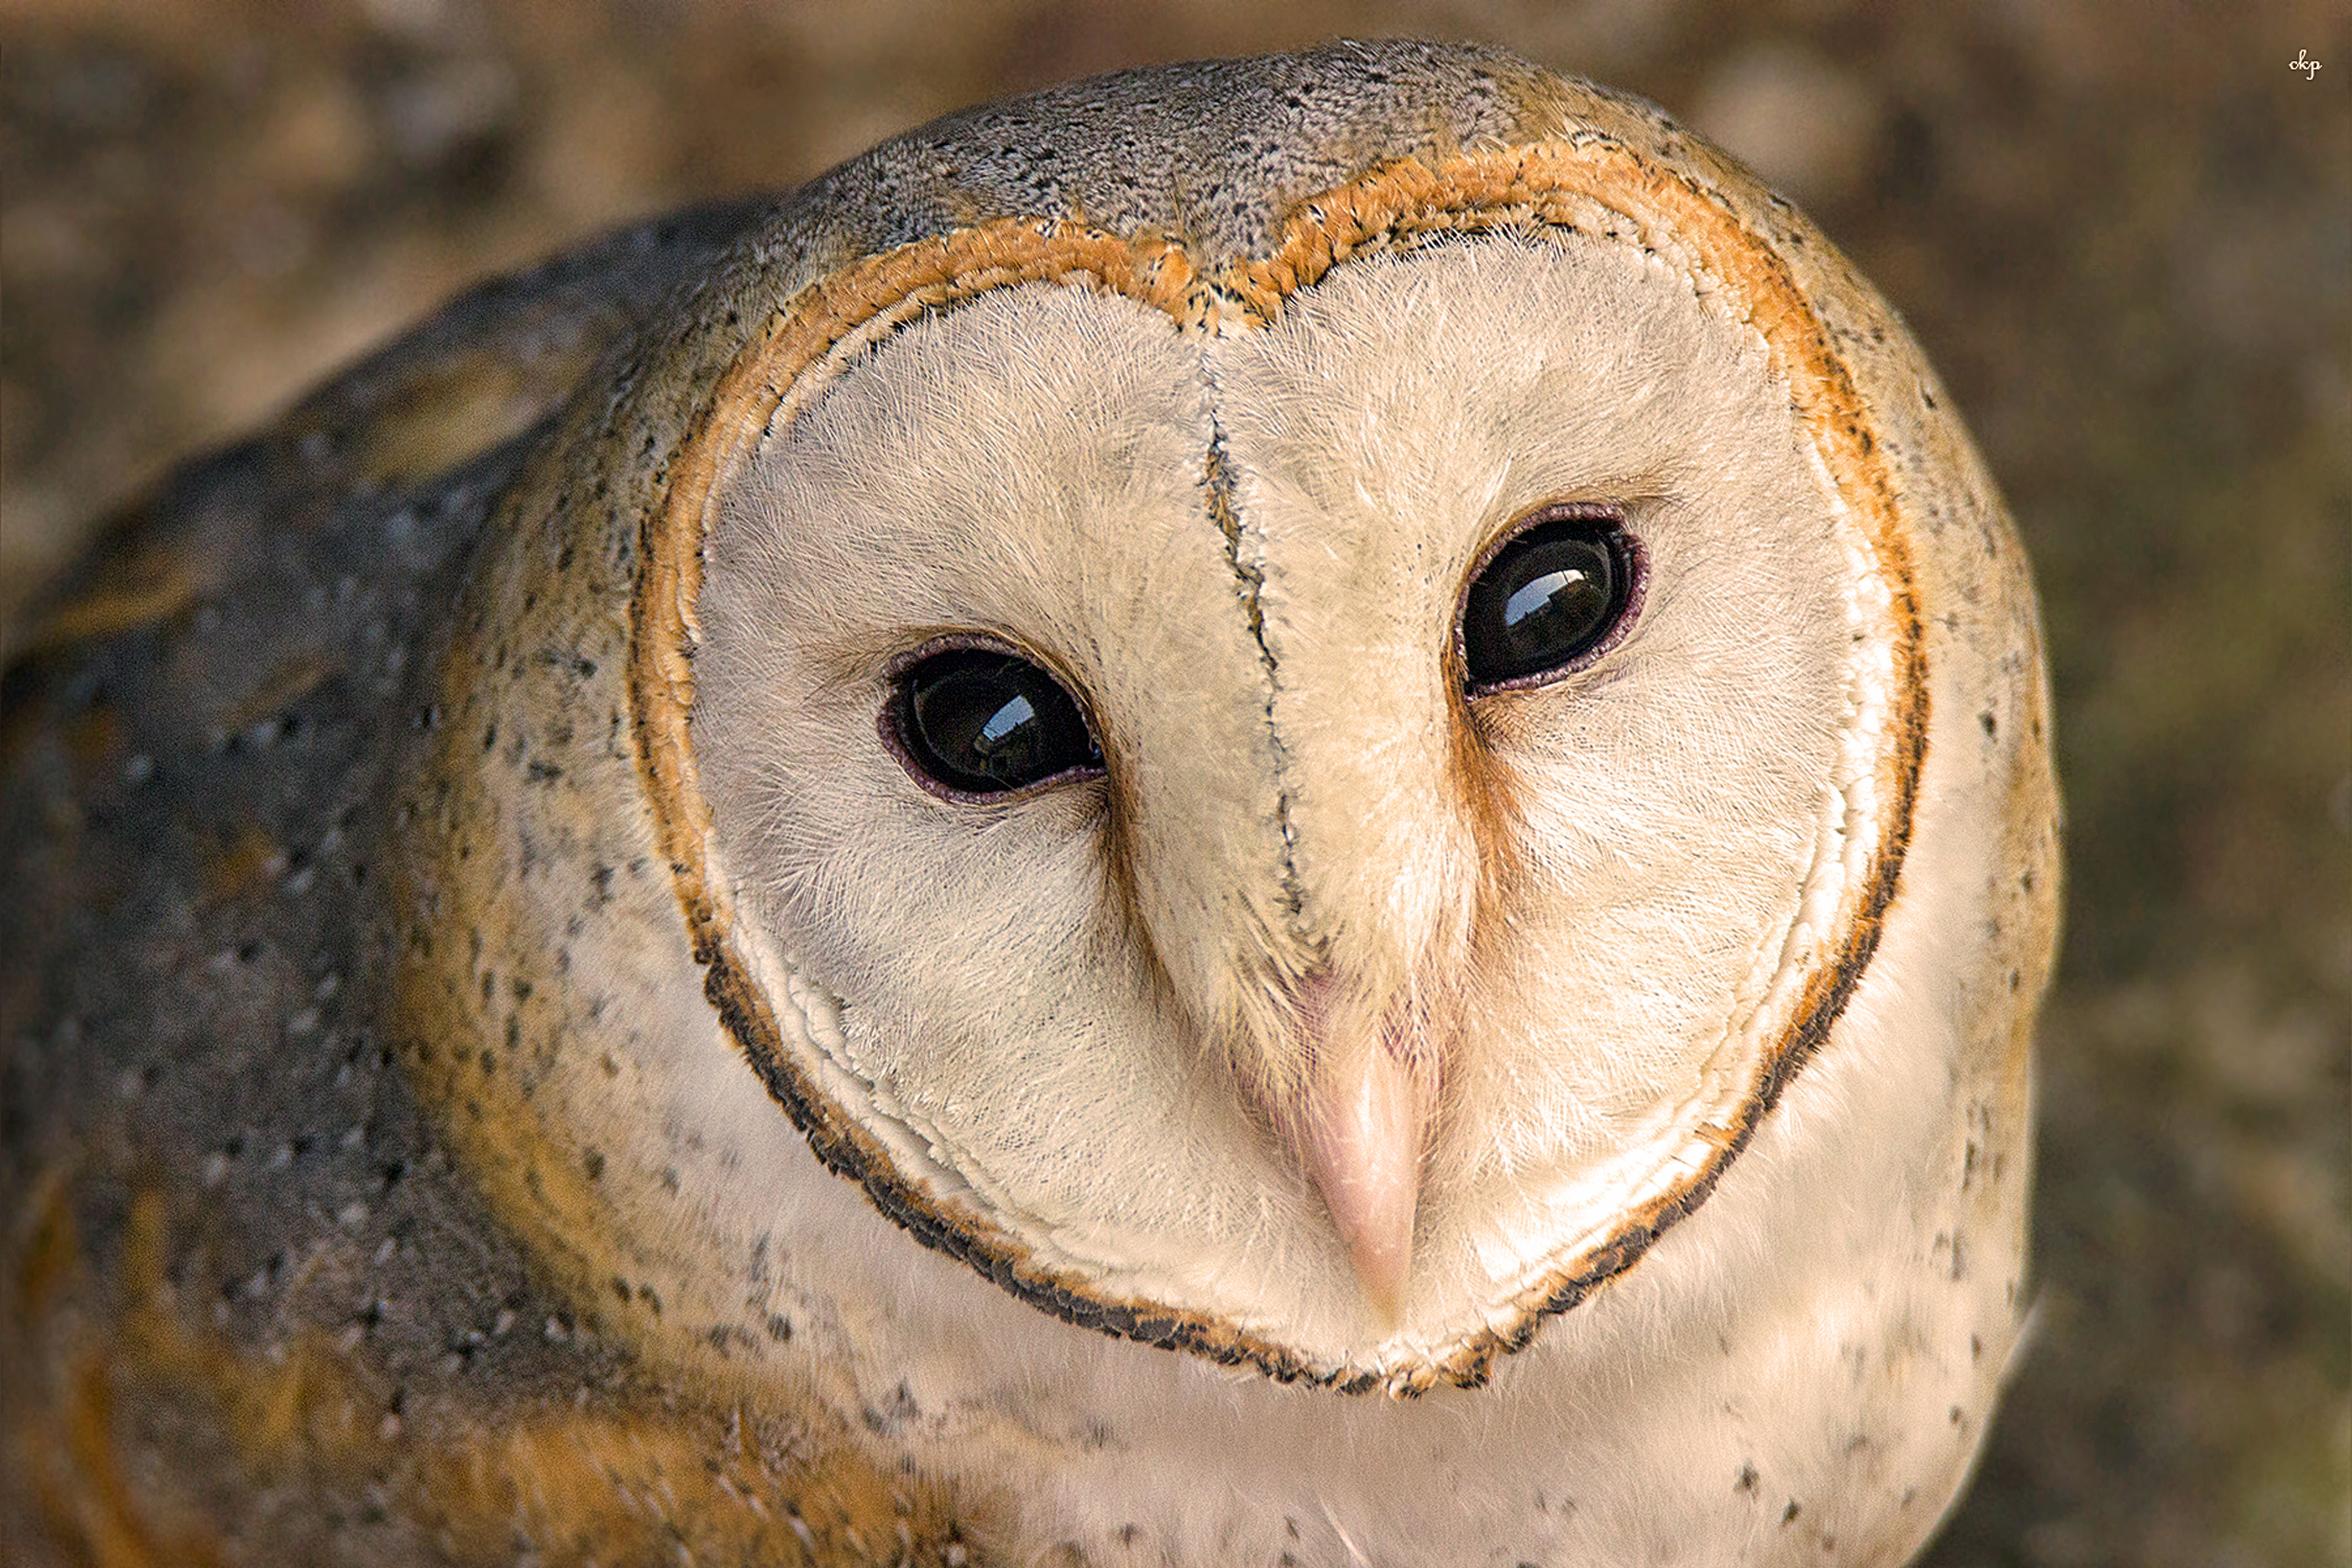 The look of love! An Adorable owl with heart-shaped face!